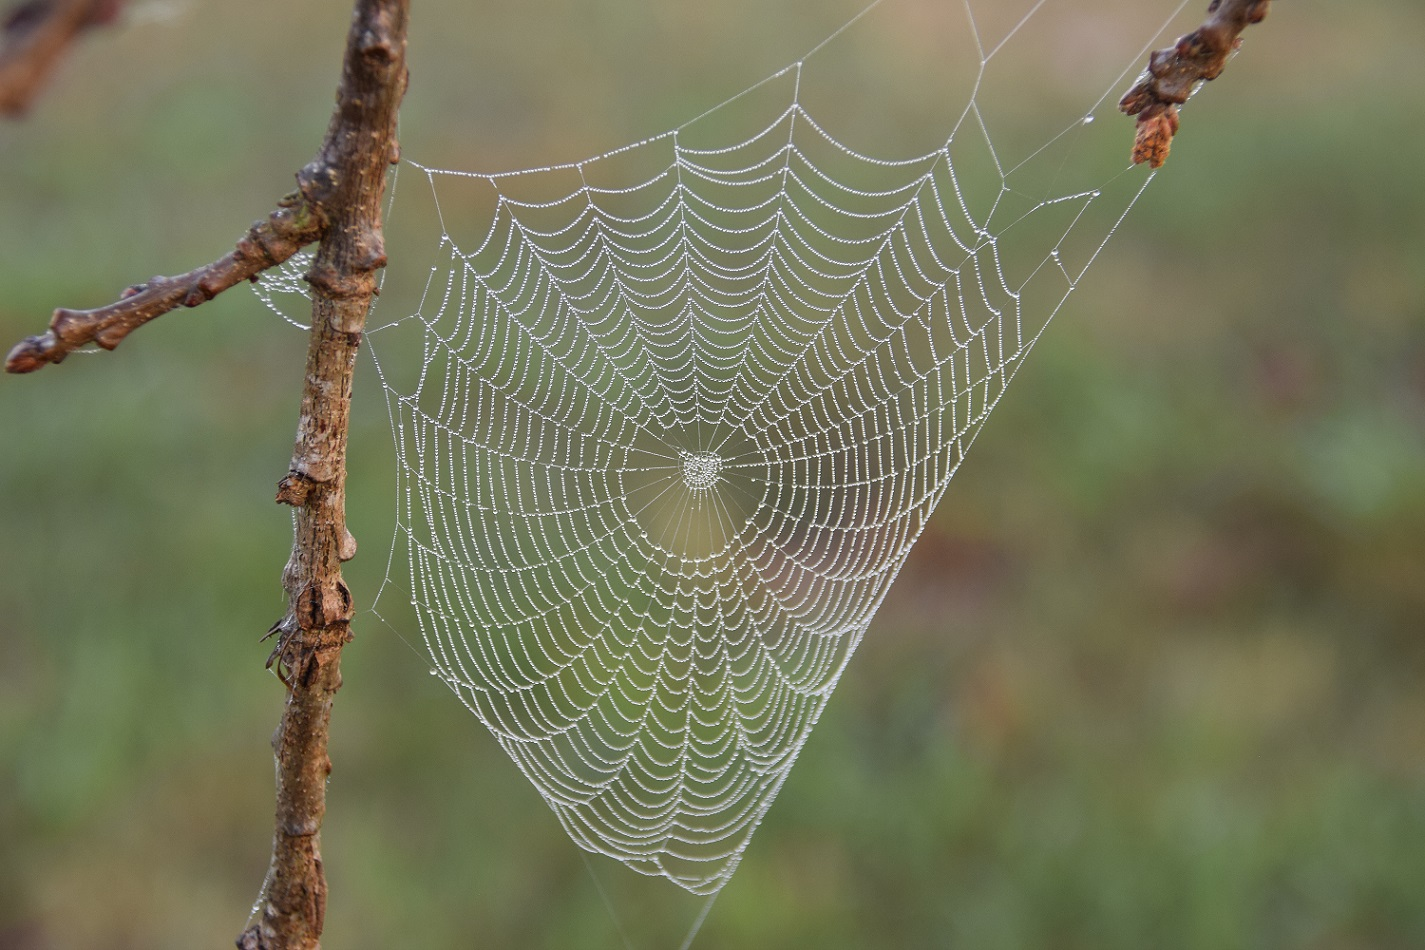 A spider web on the Burr Oak tree